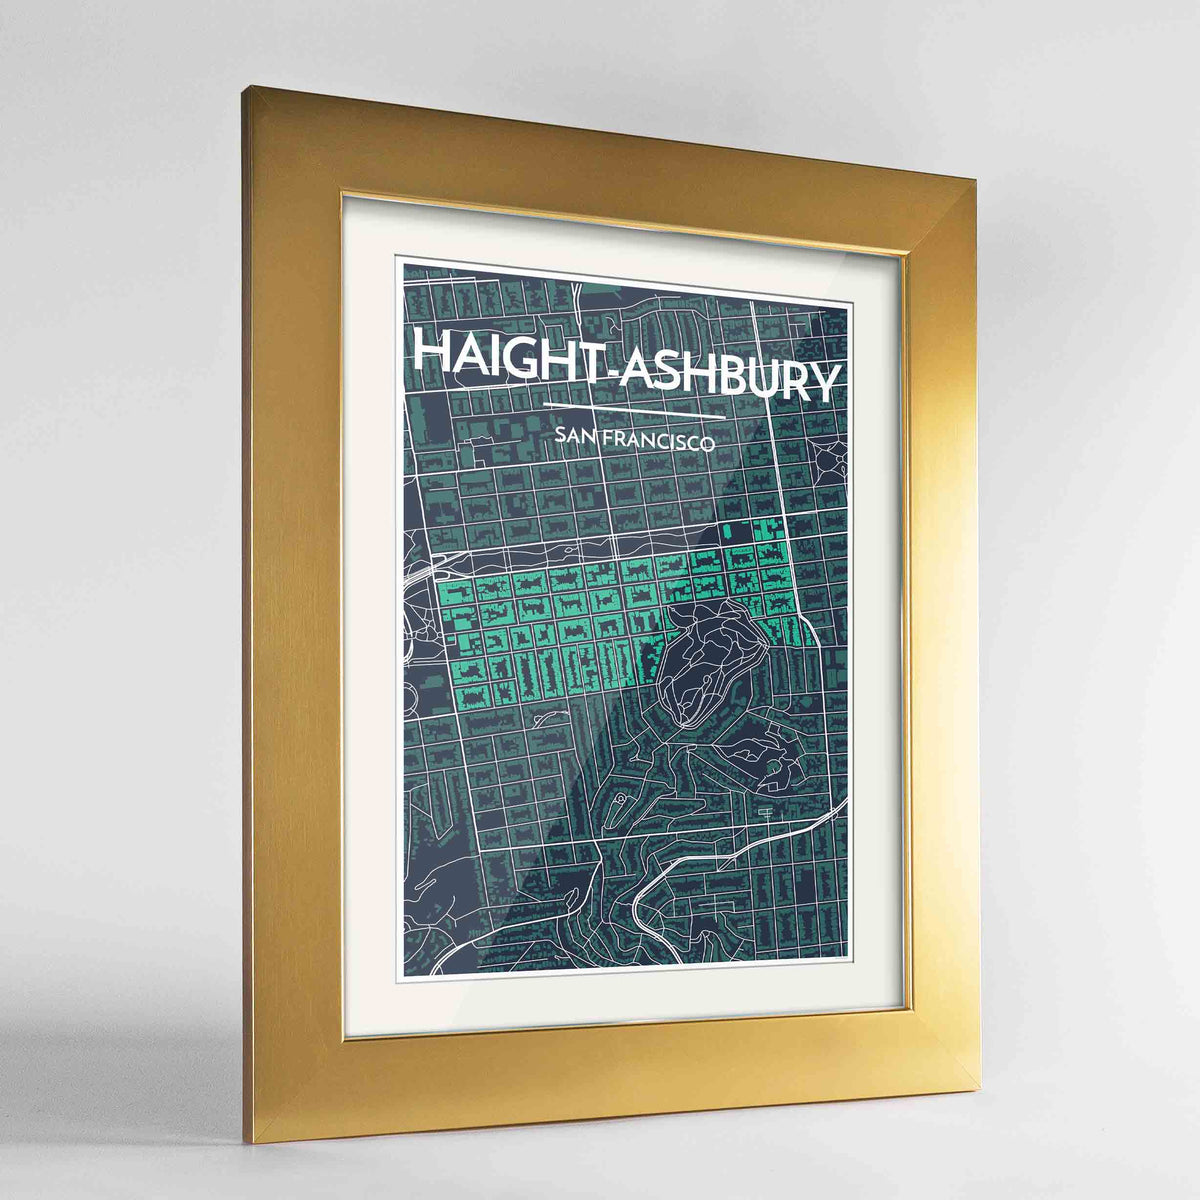 "Framed Haight-Ashbury San Francisco Map Art Print 24x36"" Gold frame Point Two Design Group"